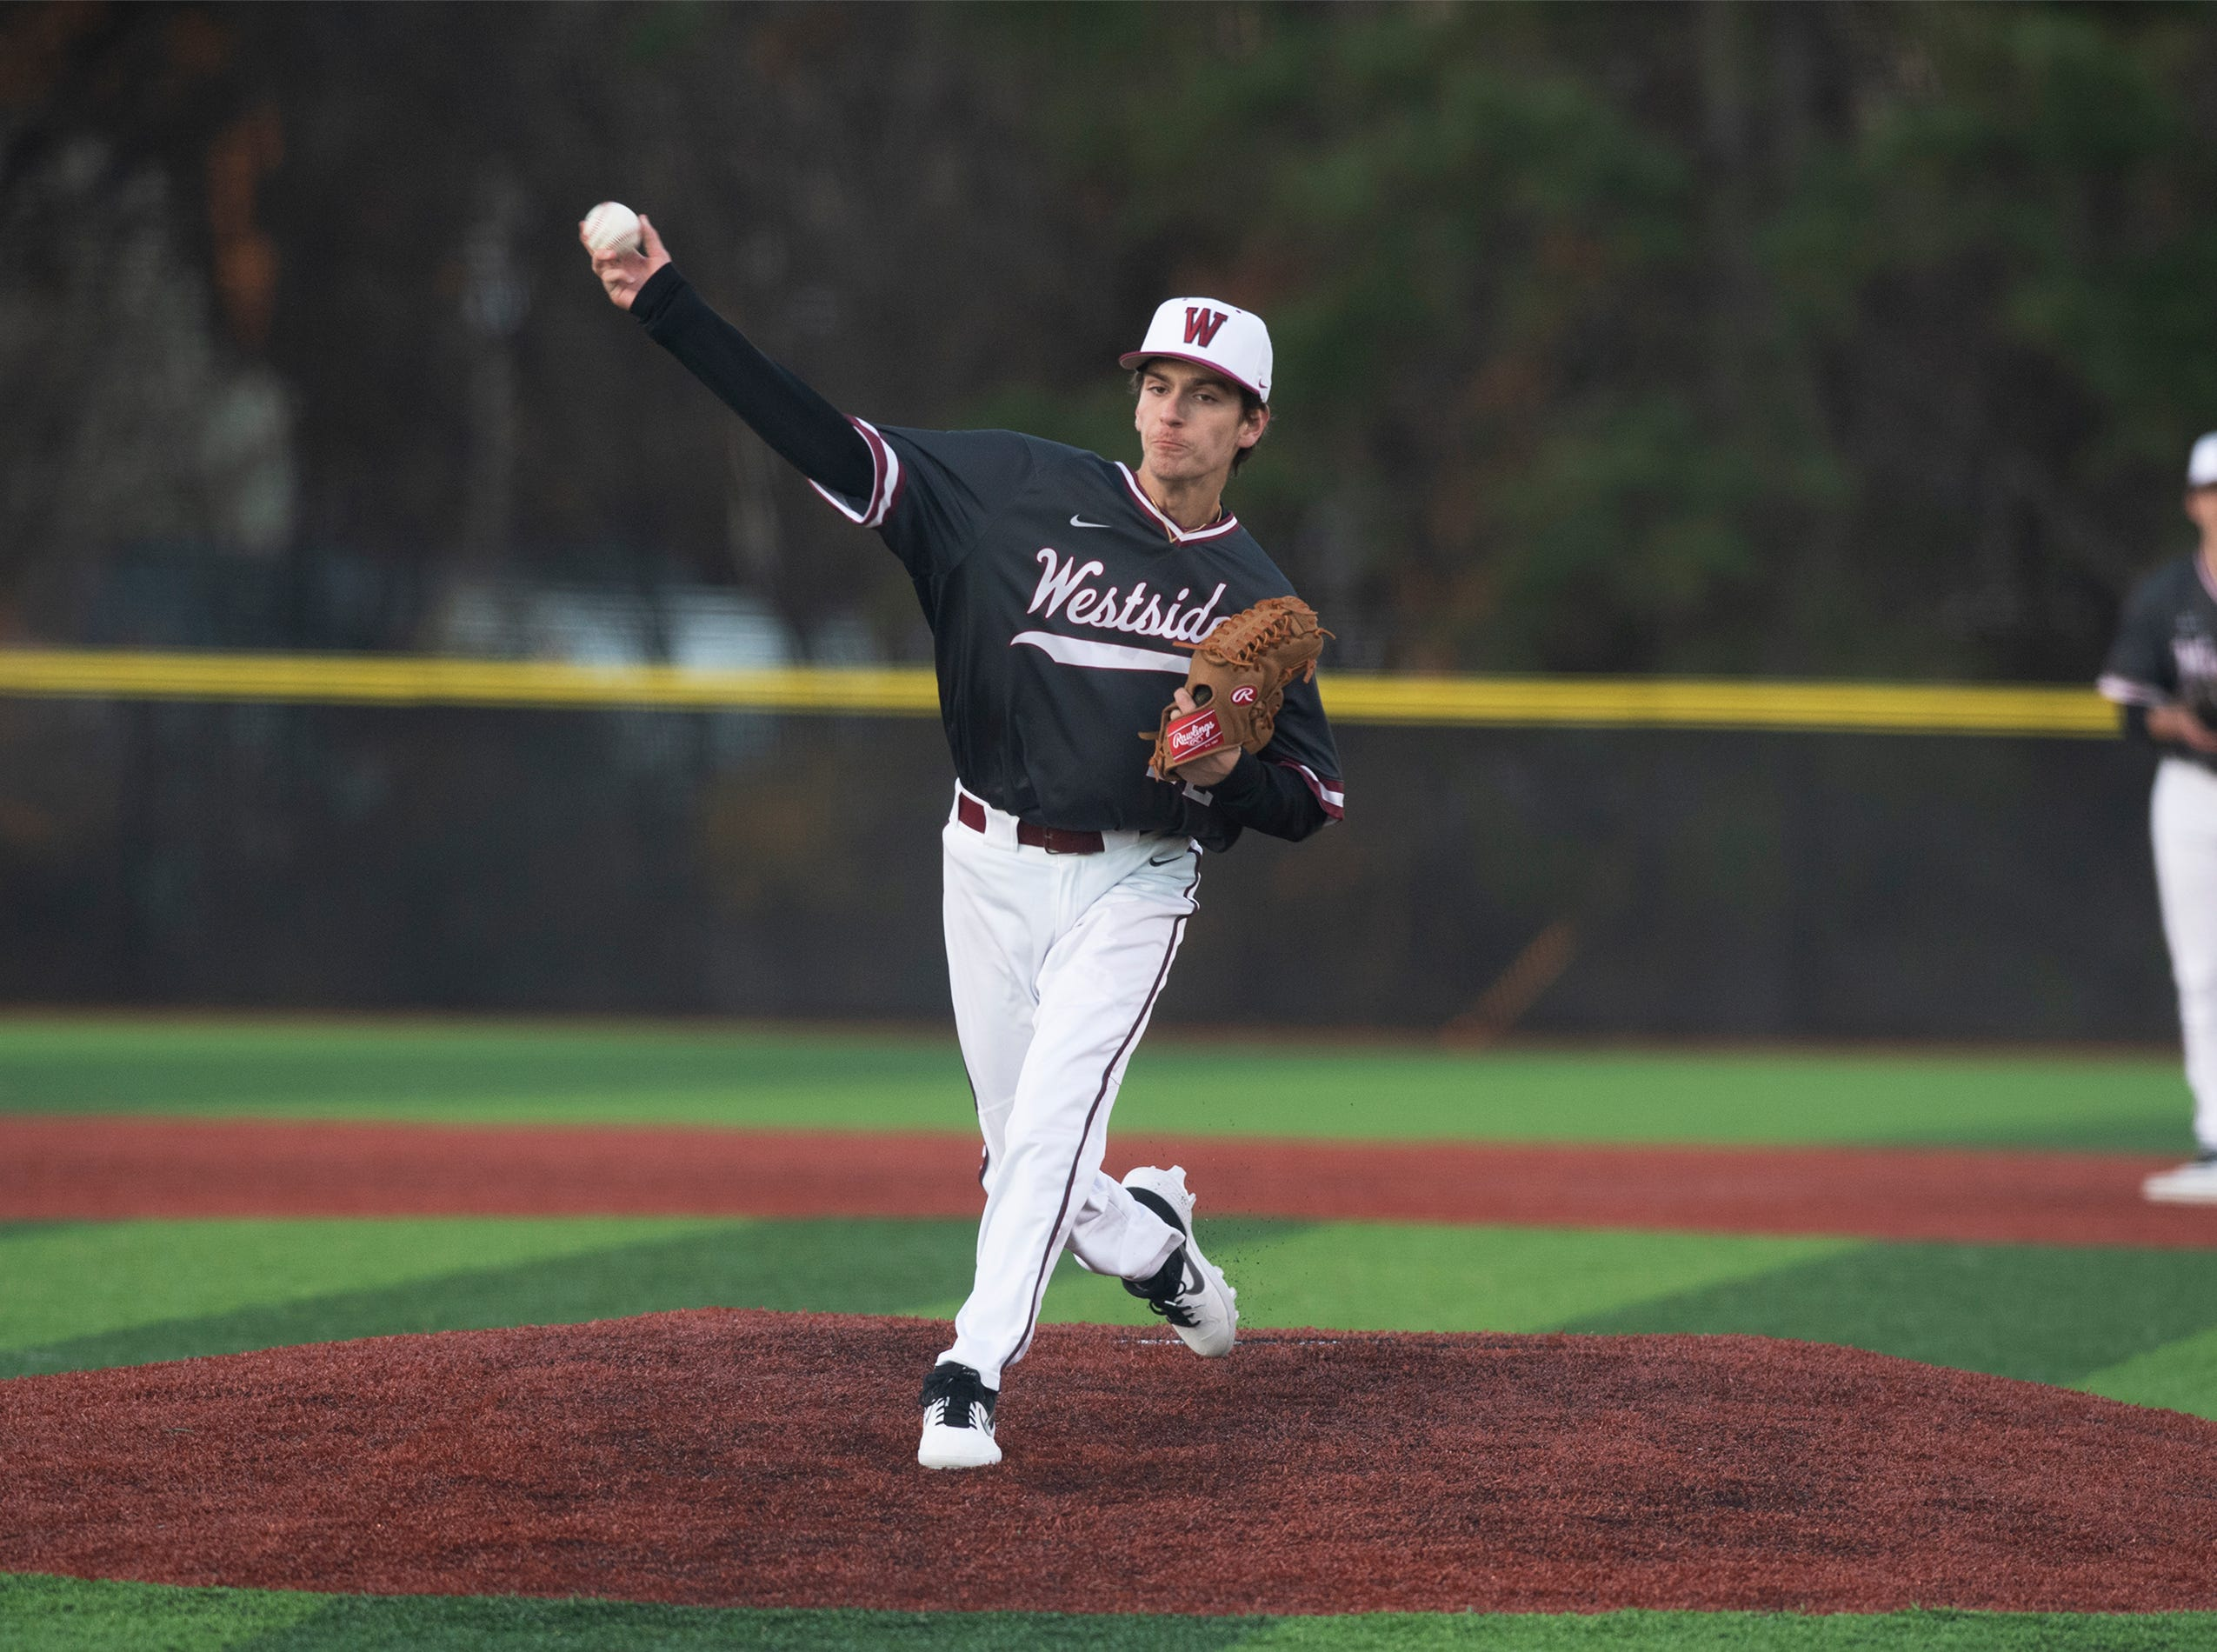 Westside High School's Connor McGill (22) pitches against Easley High School at Westside High School Tuesday, Mar. 5, 2019.